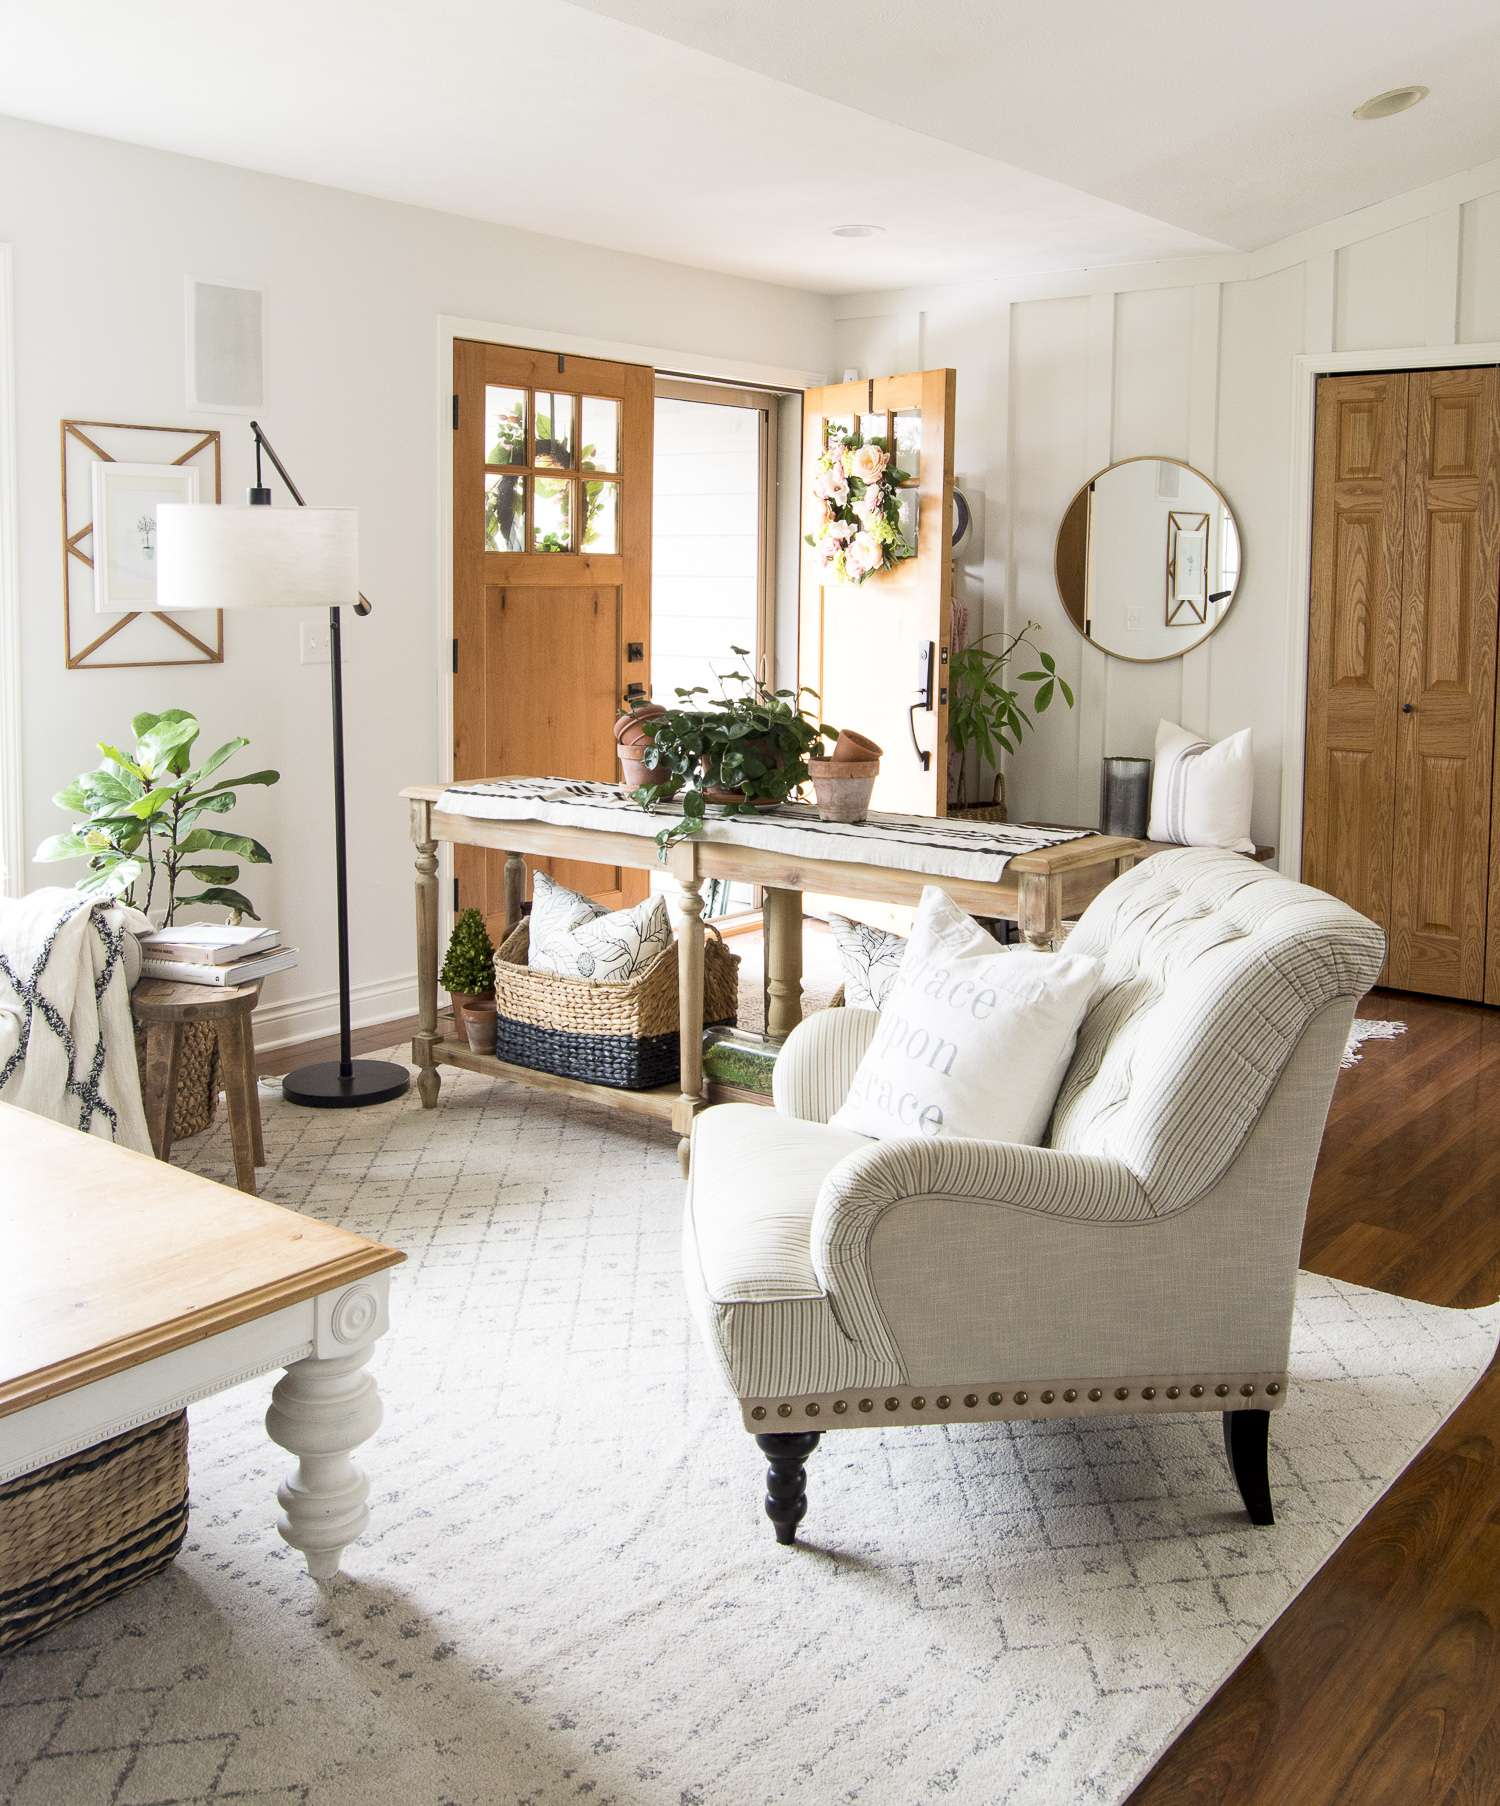 Spring Vintage Farmhouse Decor With A Boho Twist Grace In My Space